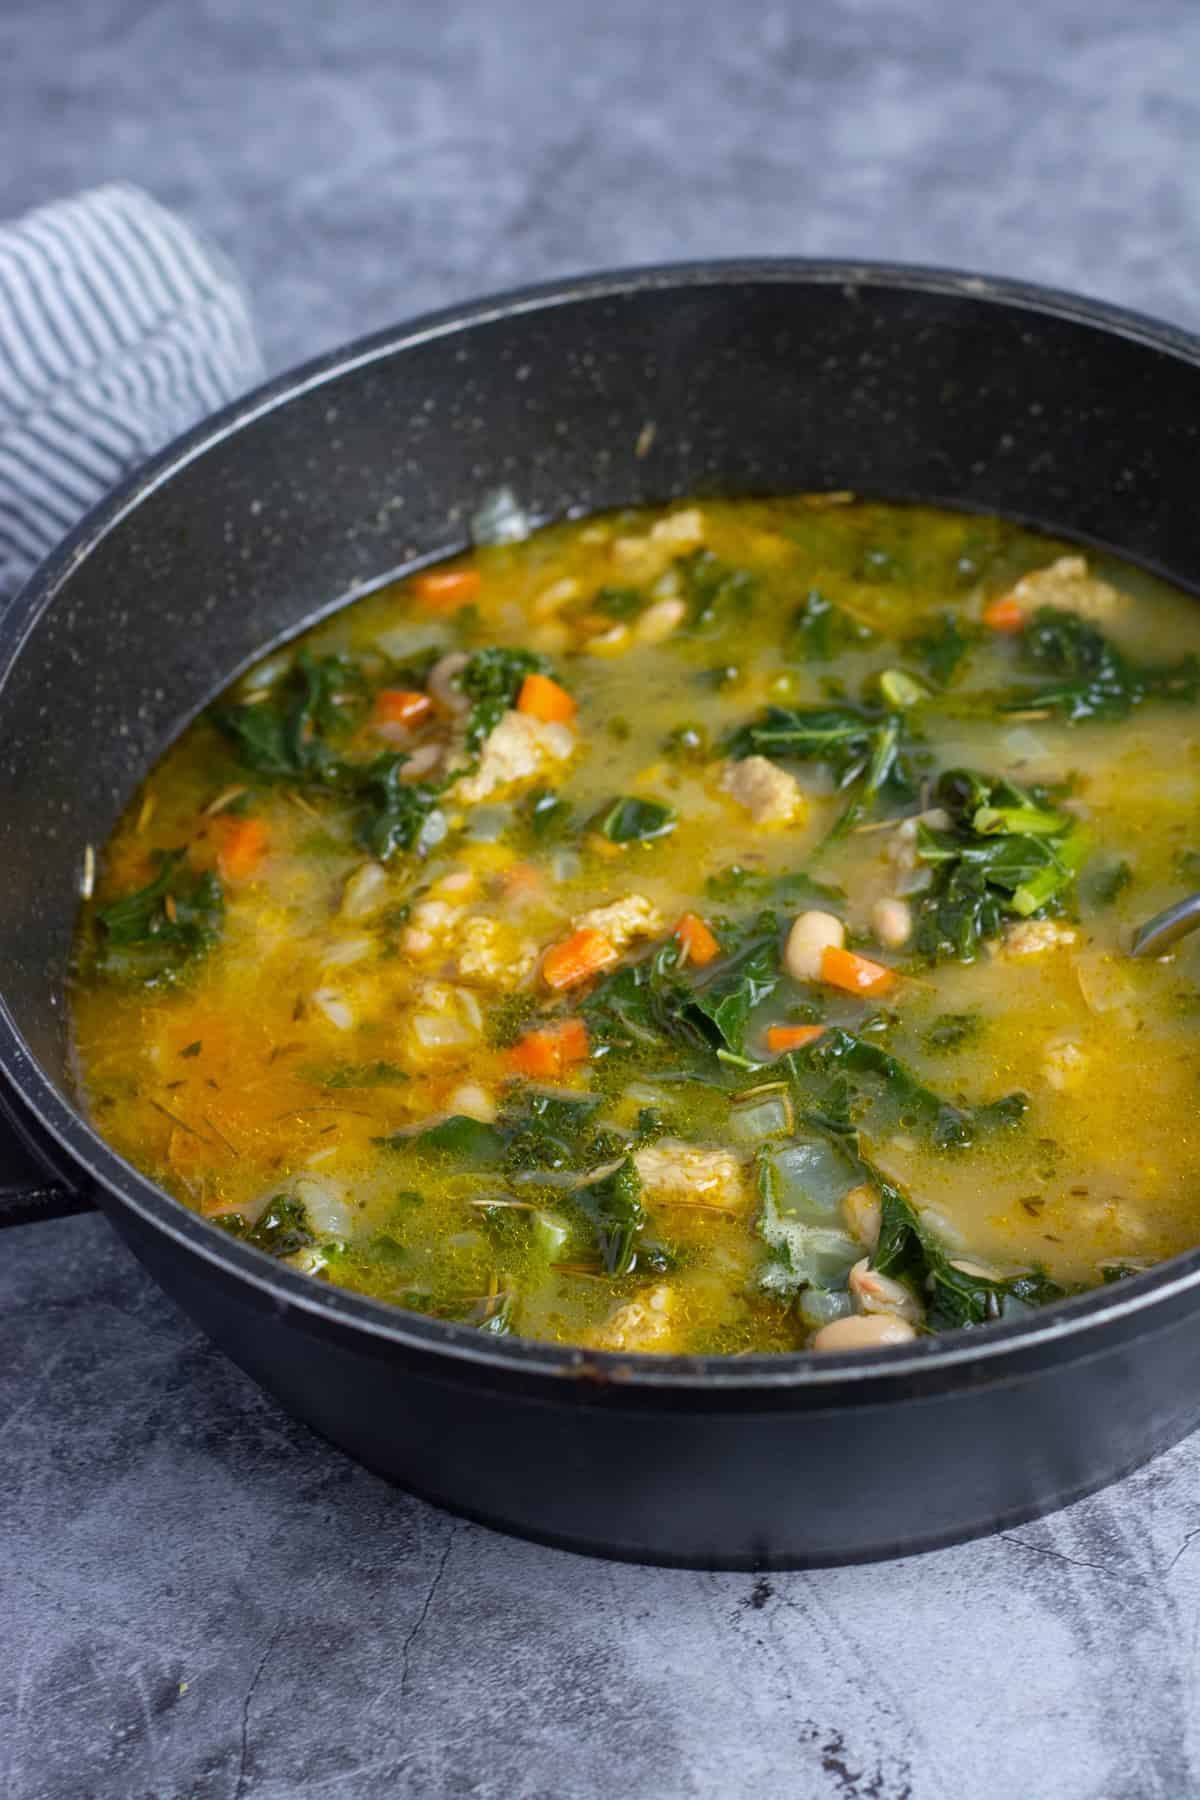 white bean and kale soup in a black bowl on a grey background